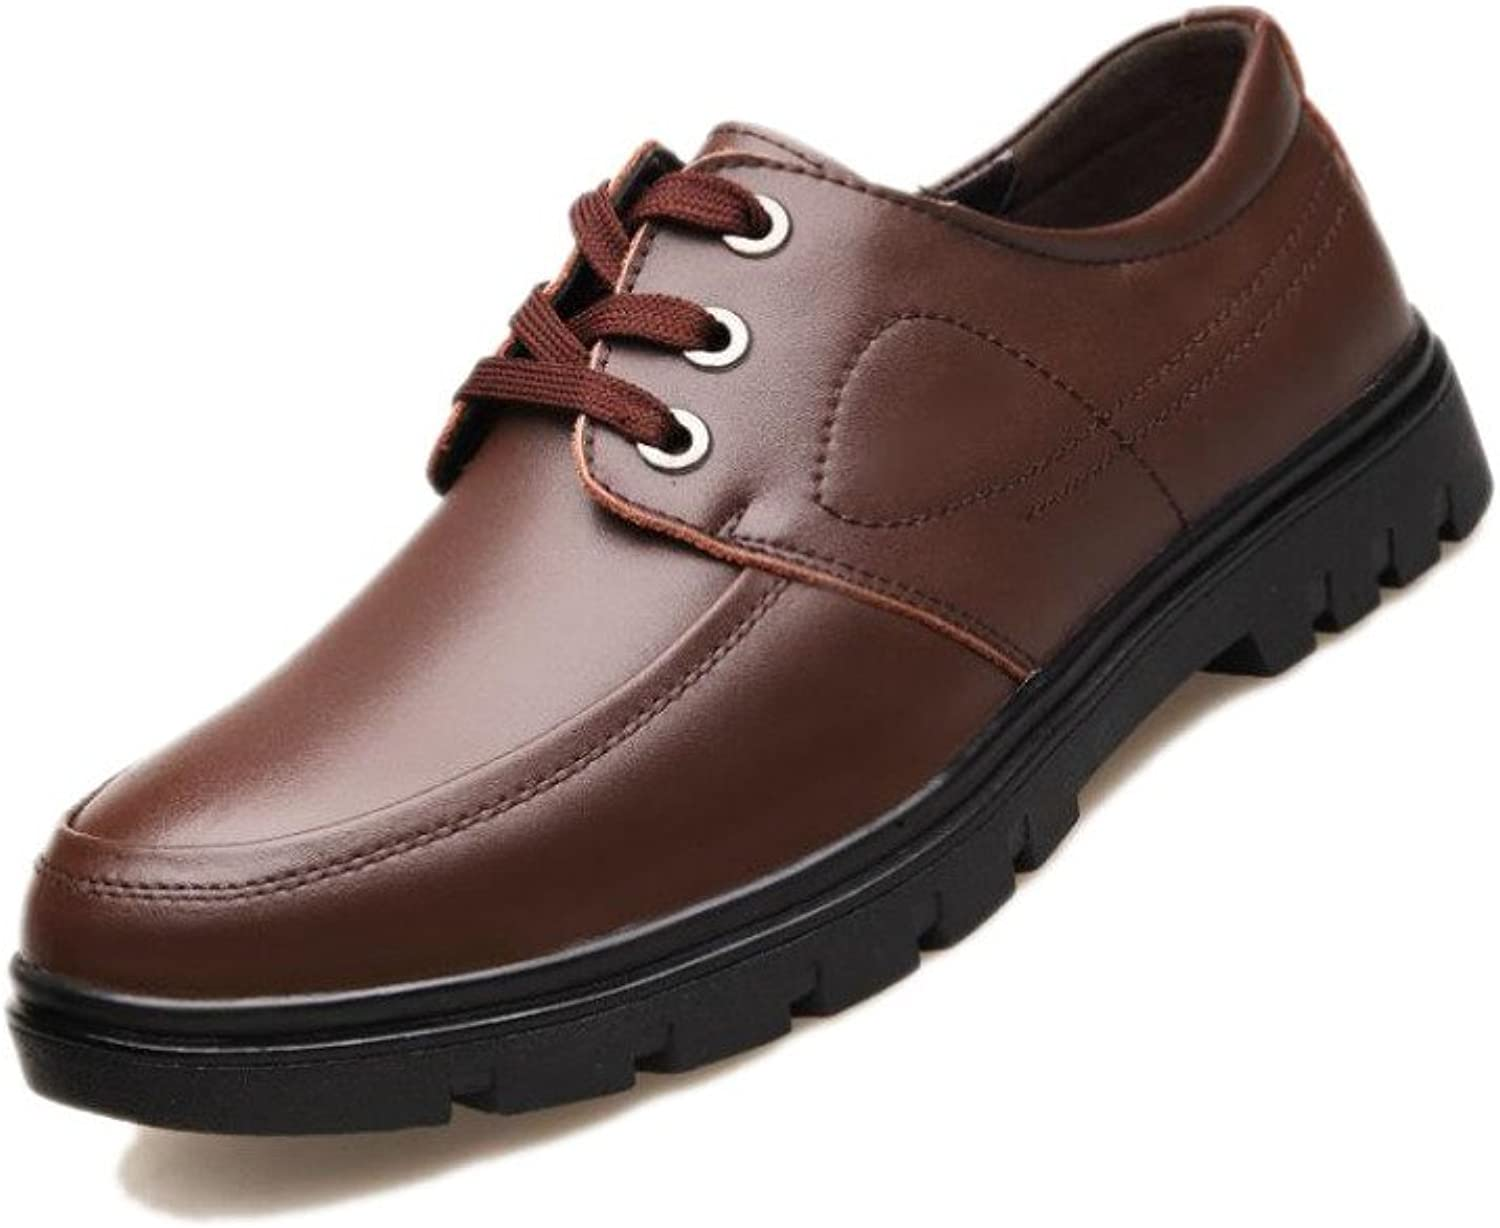 WLFHM Men's Casual Leather shoes, Autumn British Leather Fashion shoes